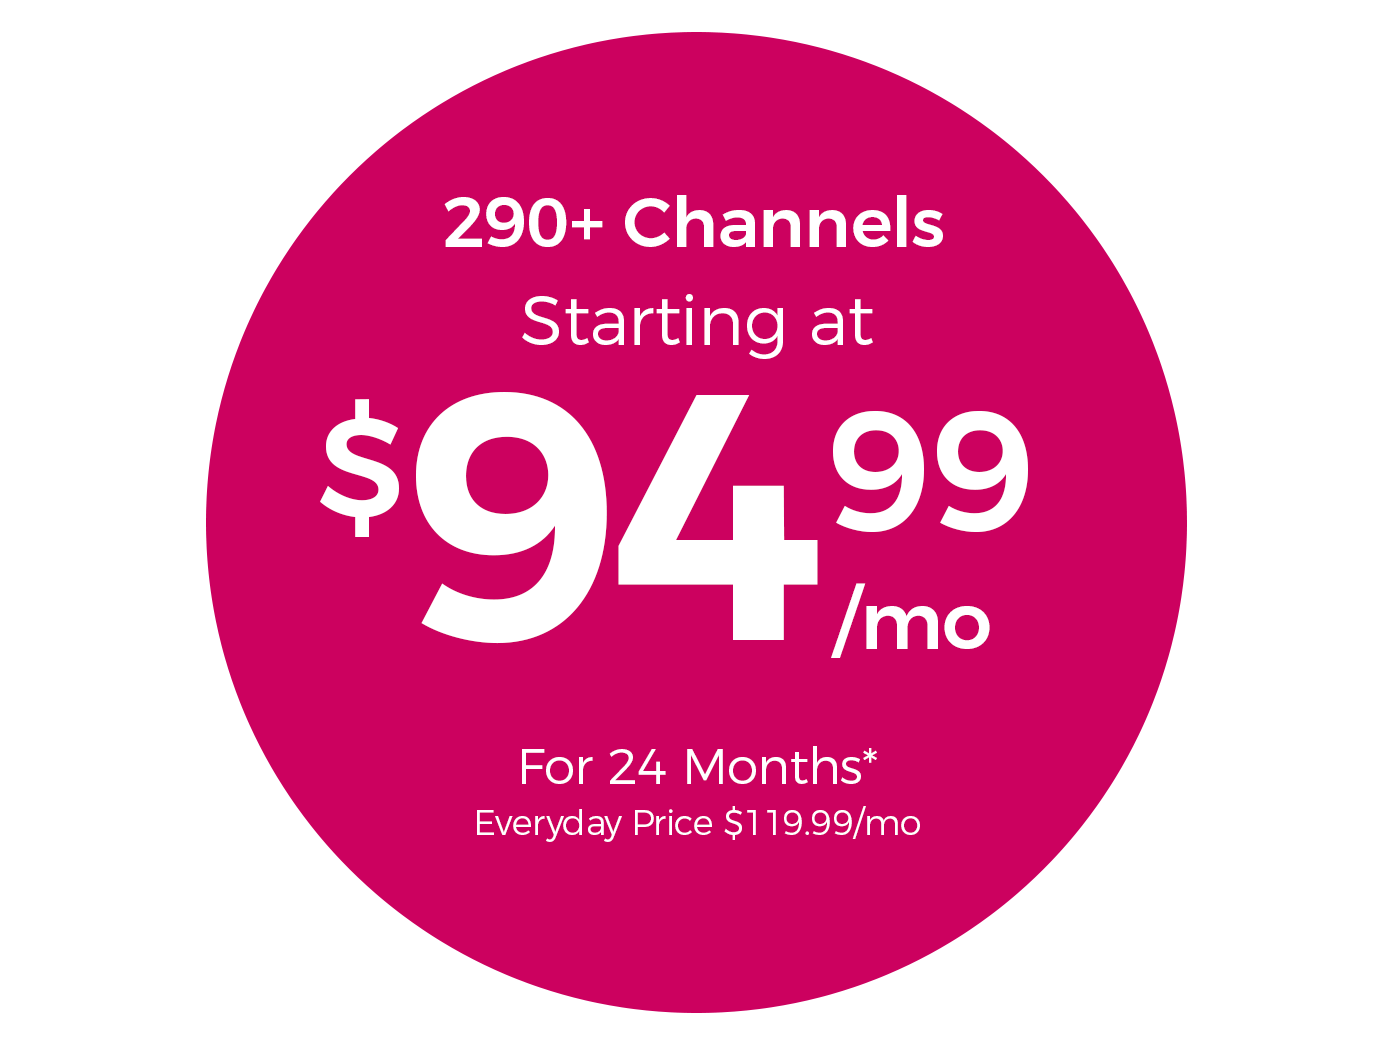 290+ Channels Starting at $94.99/mo For 24 Months* Everyday Price $119.99/mo